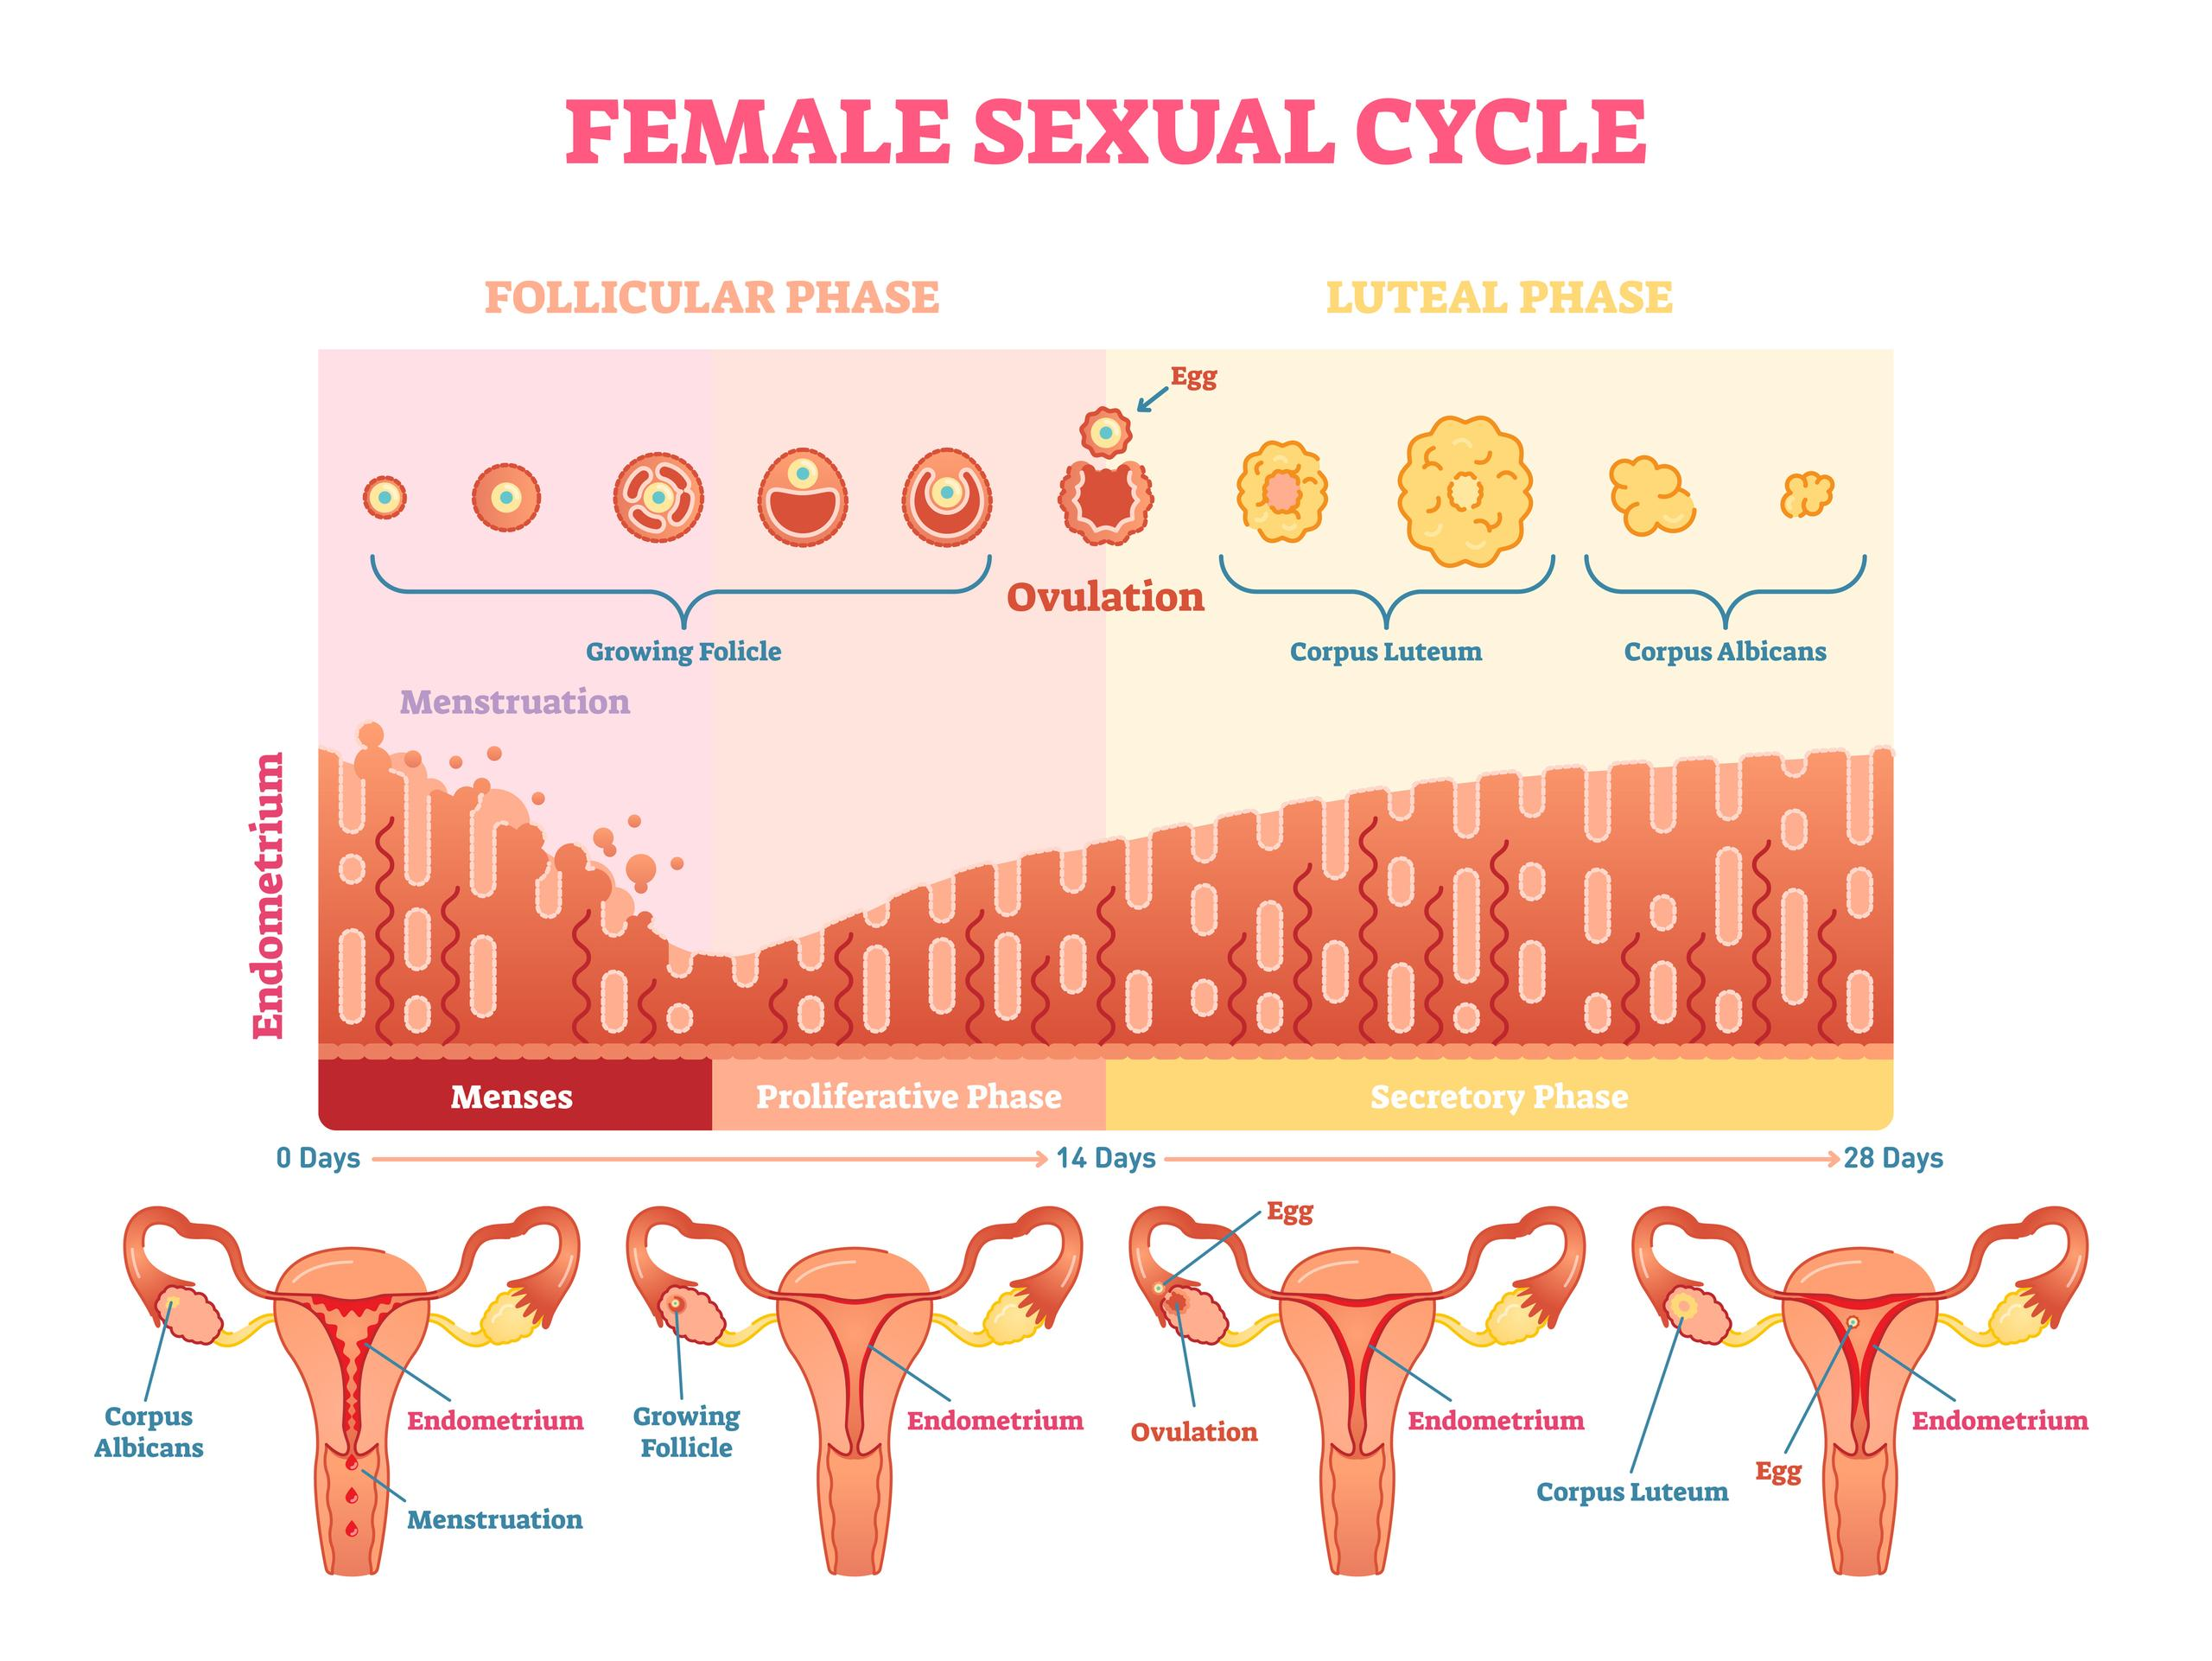 Female sexual cycle. Credit: normaals.